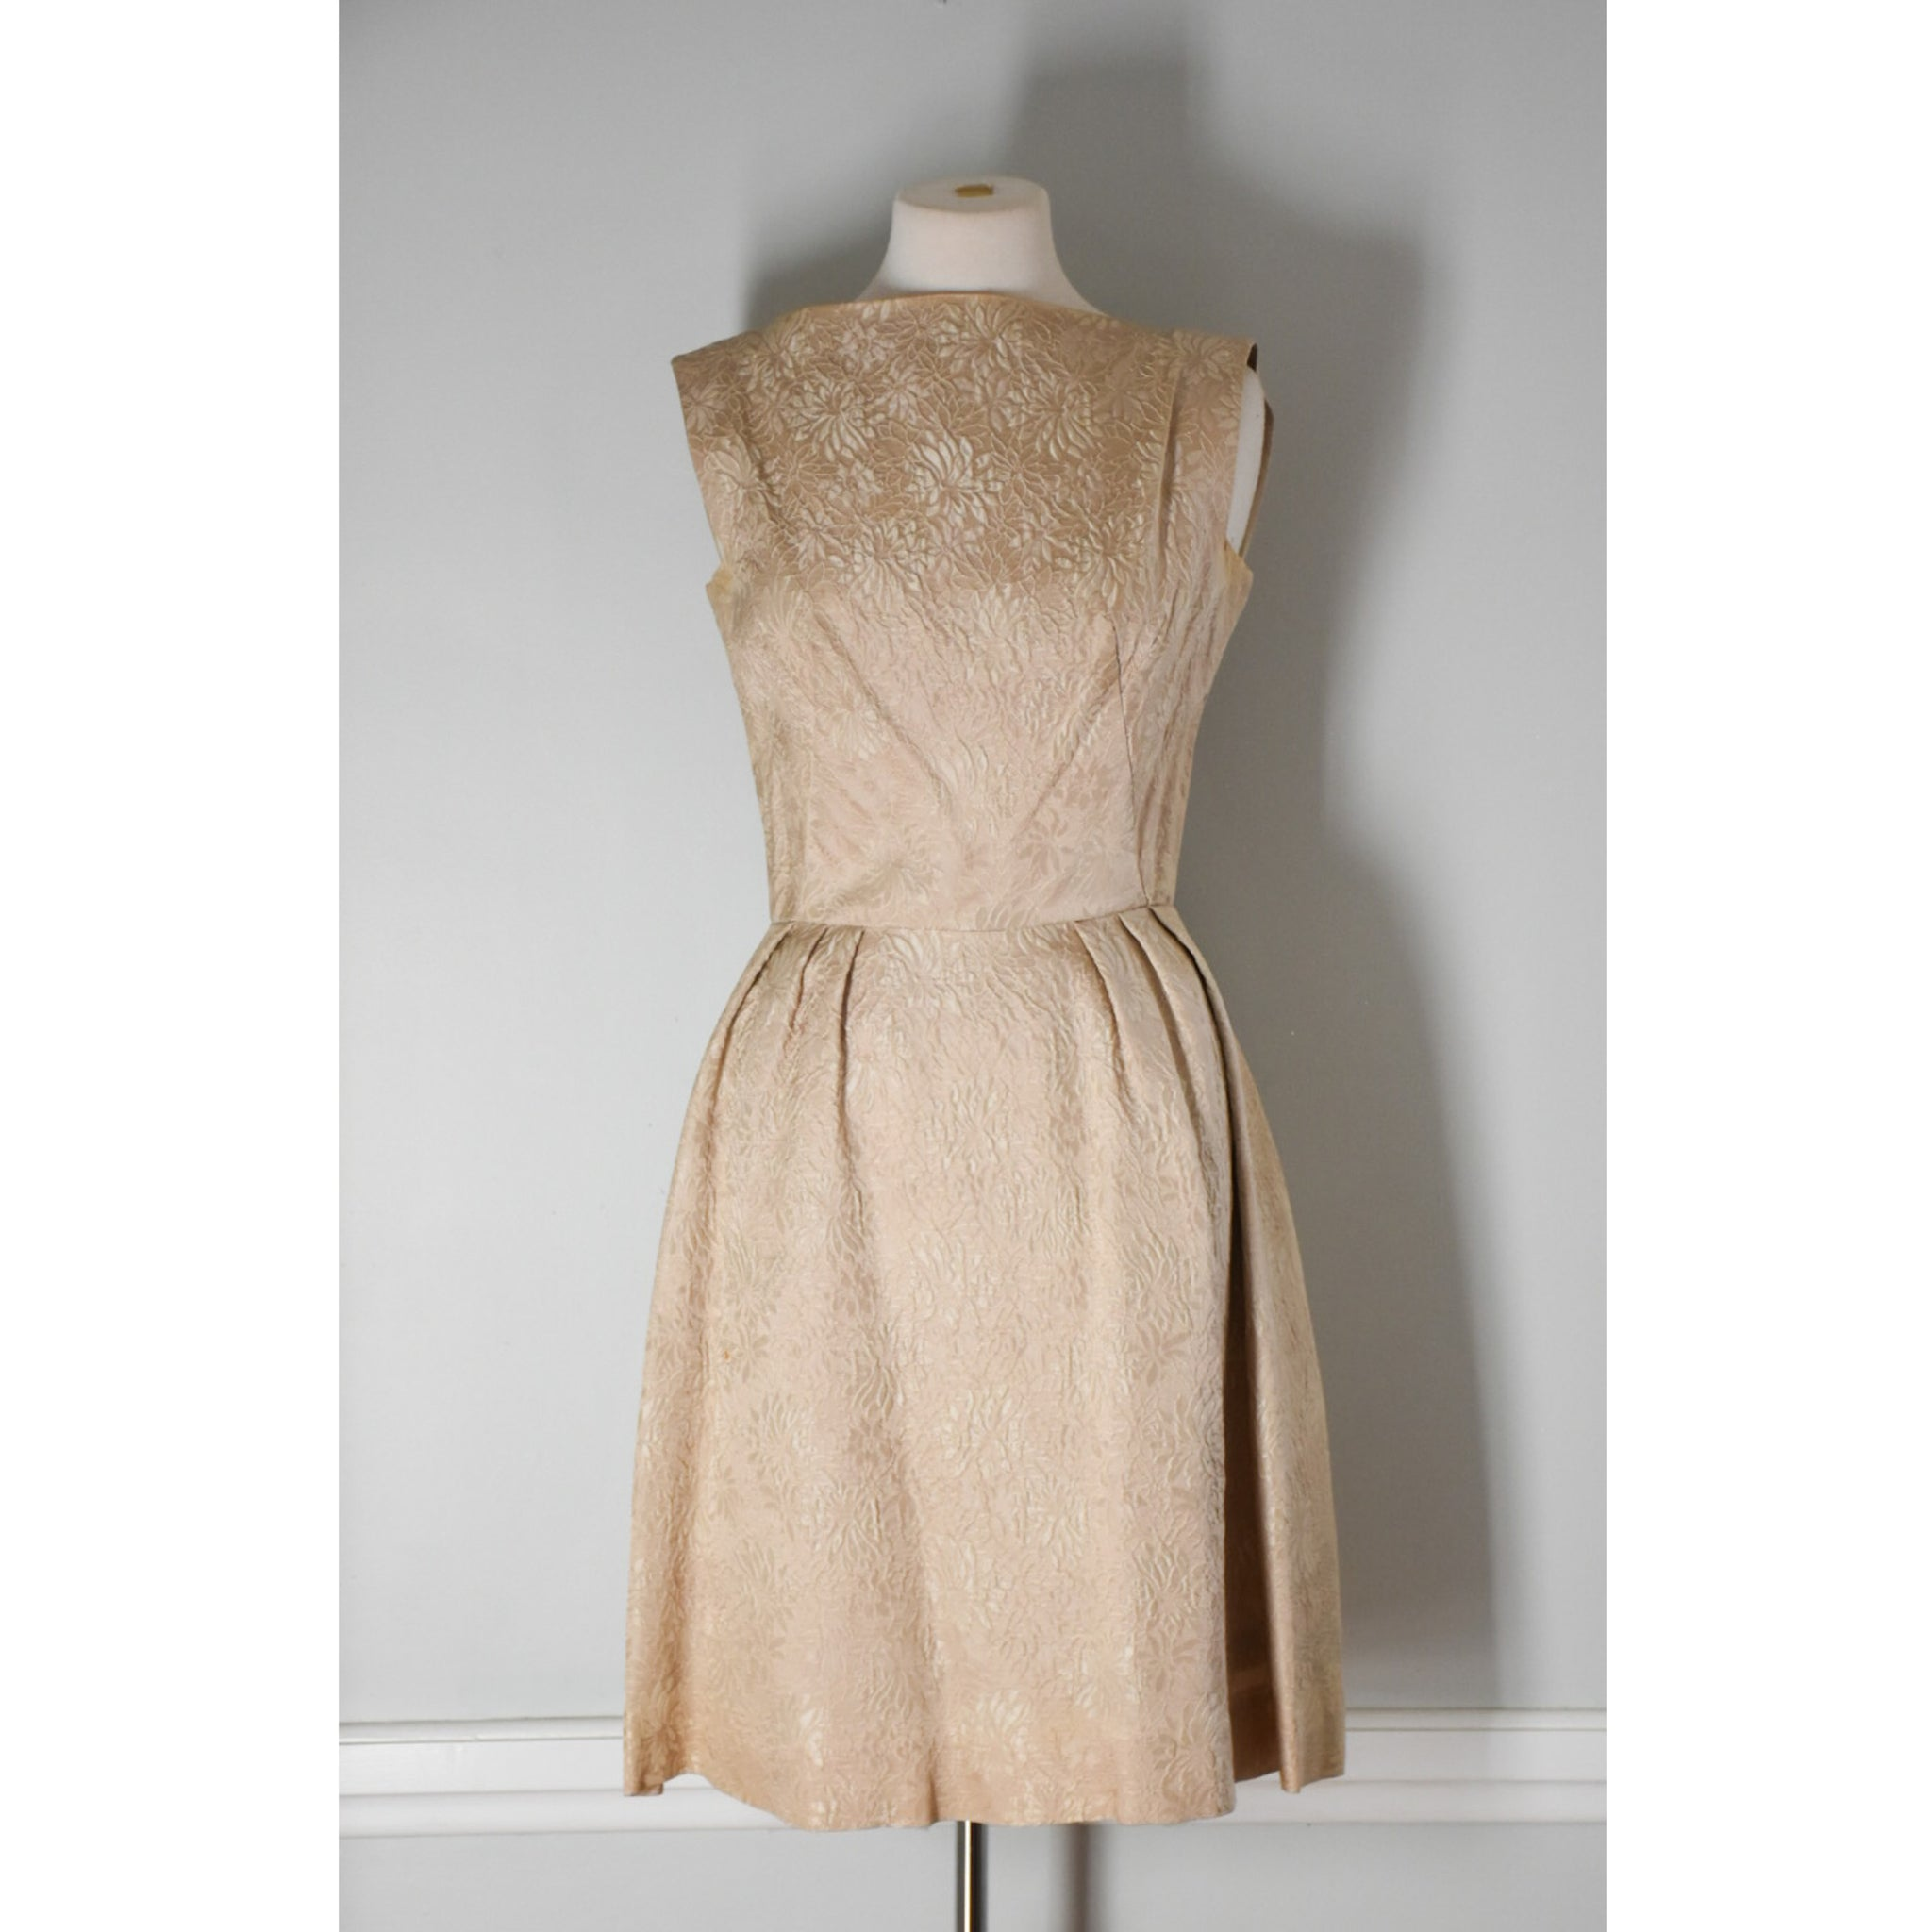 50s / 60s Brocade Dress from DuncanLovesTess.com